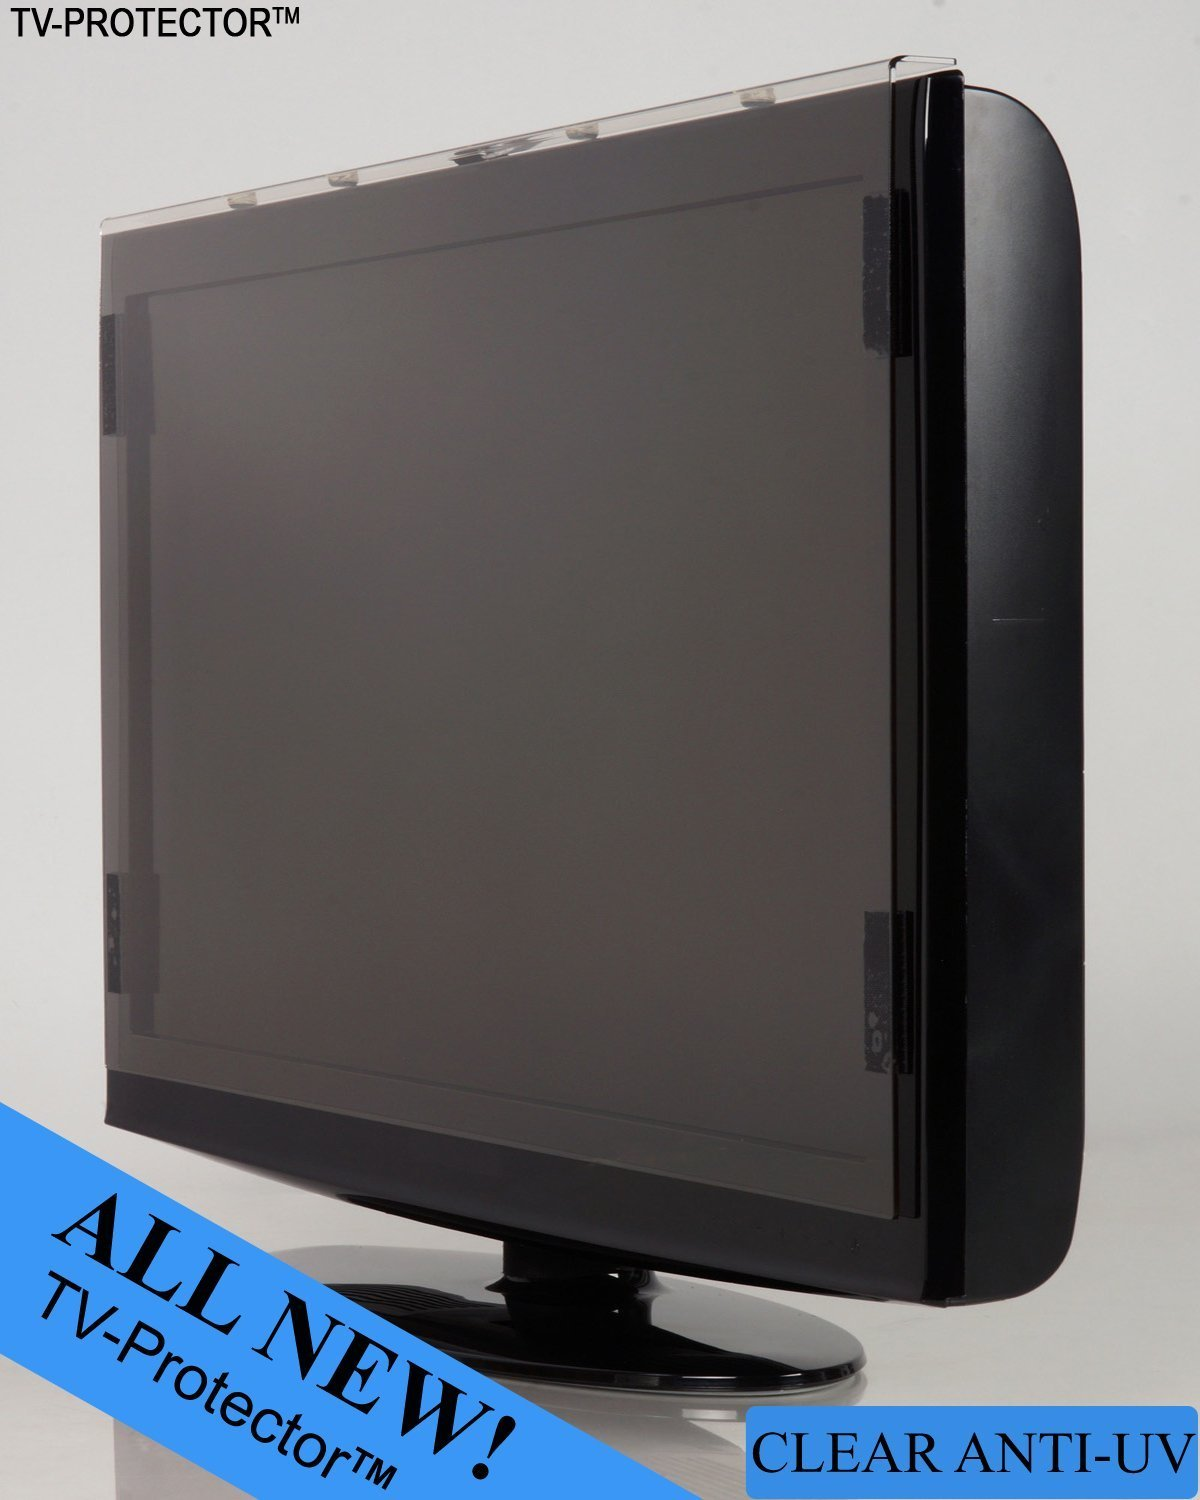 58-60 inch TV-ProtectorTM TV Screen Protector for LCD, LED and Plasma TVs